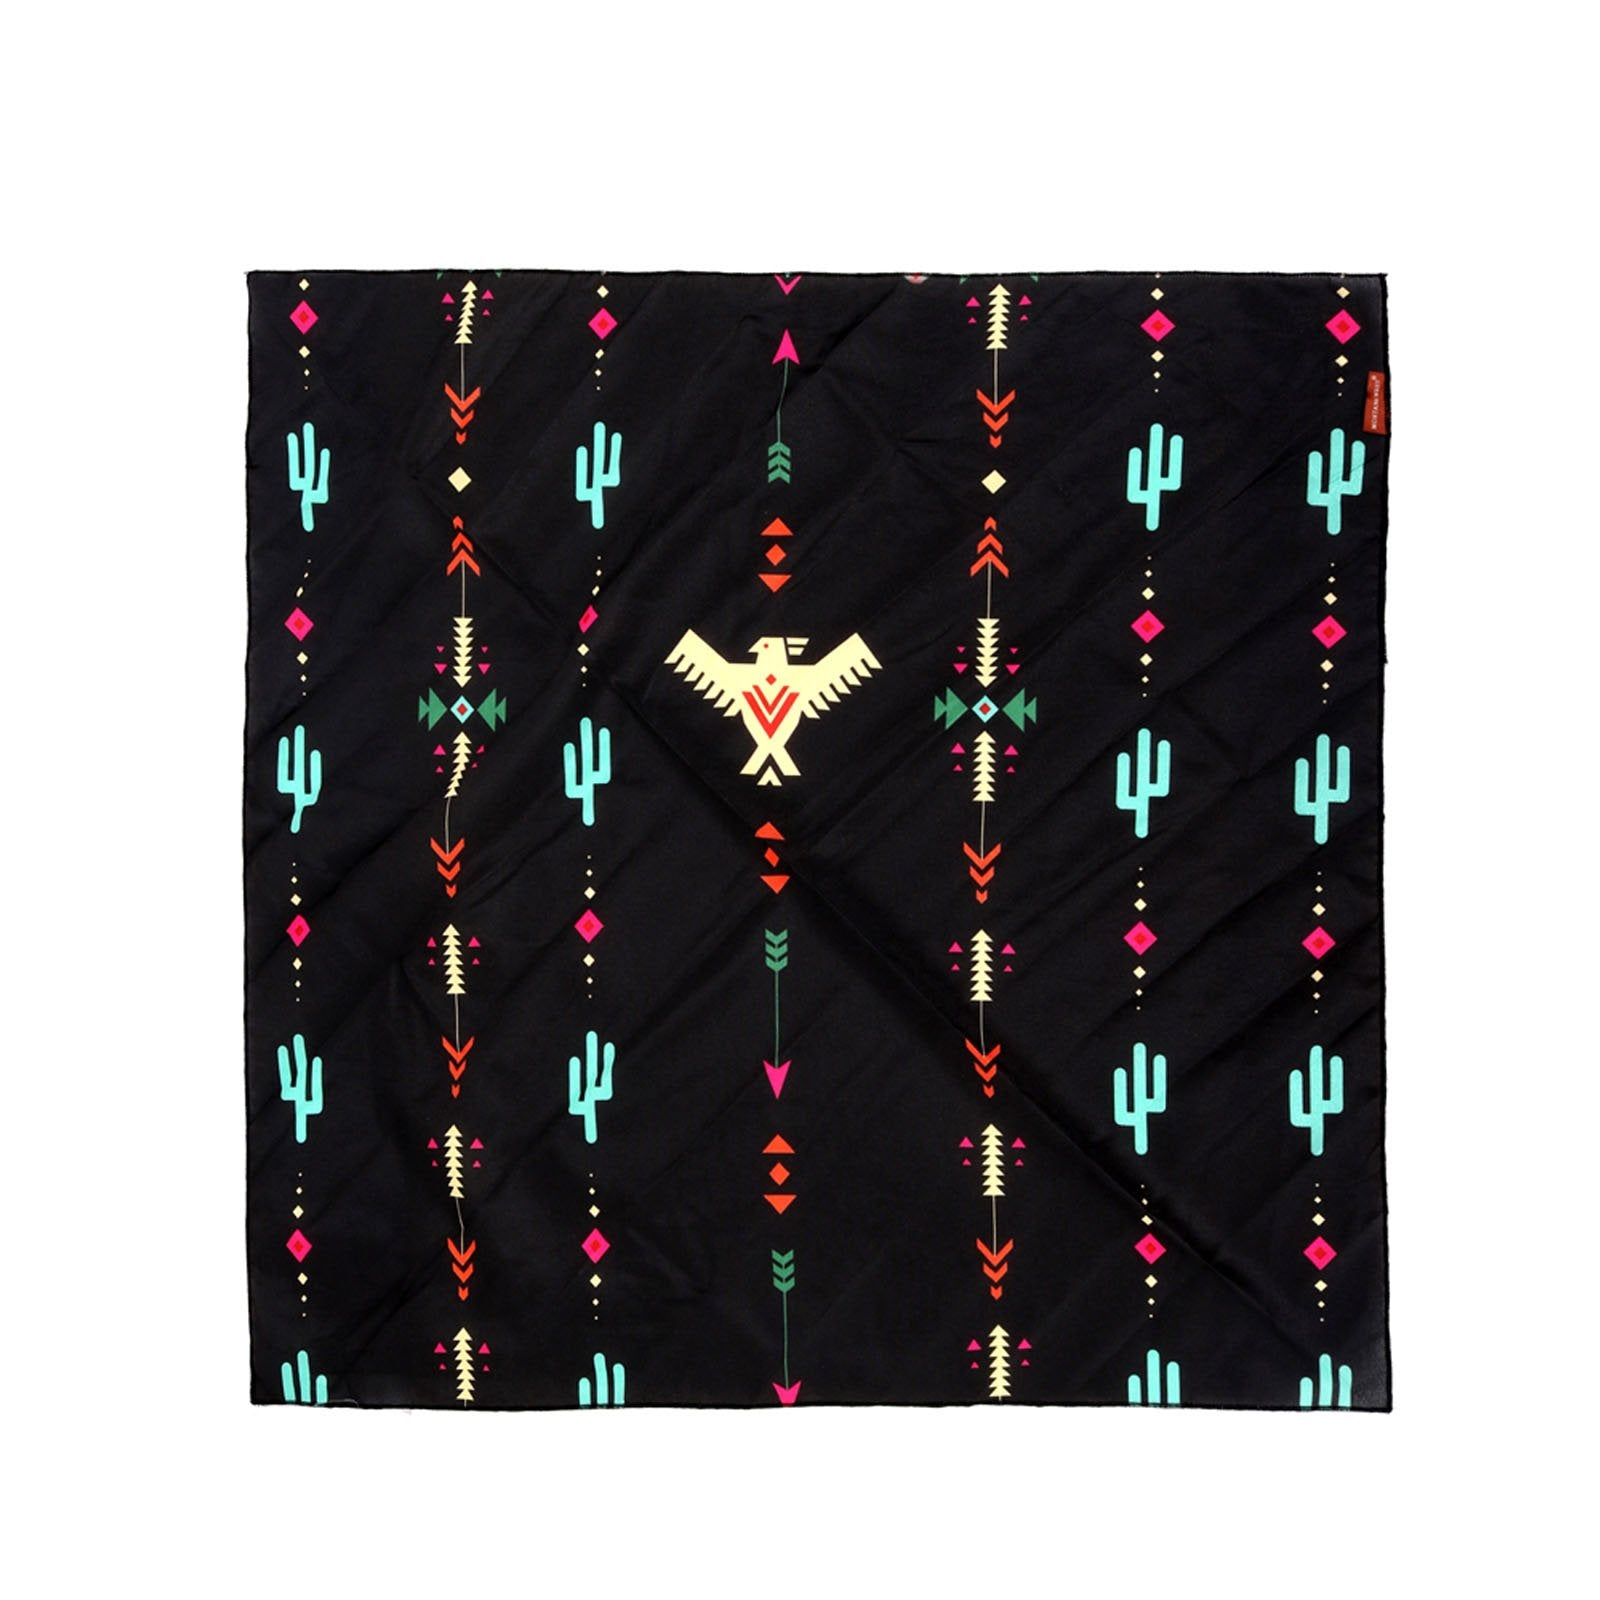 BDN03  American Bling Arrow Thunderbird Pattern Print Bandana- Assorted Colors (12 PCS)